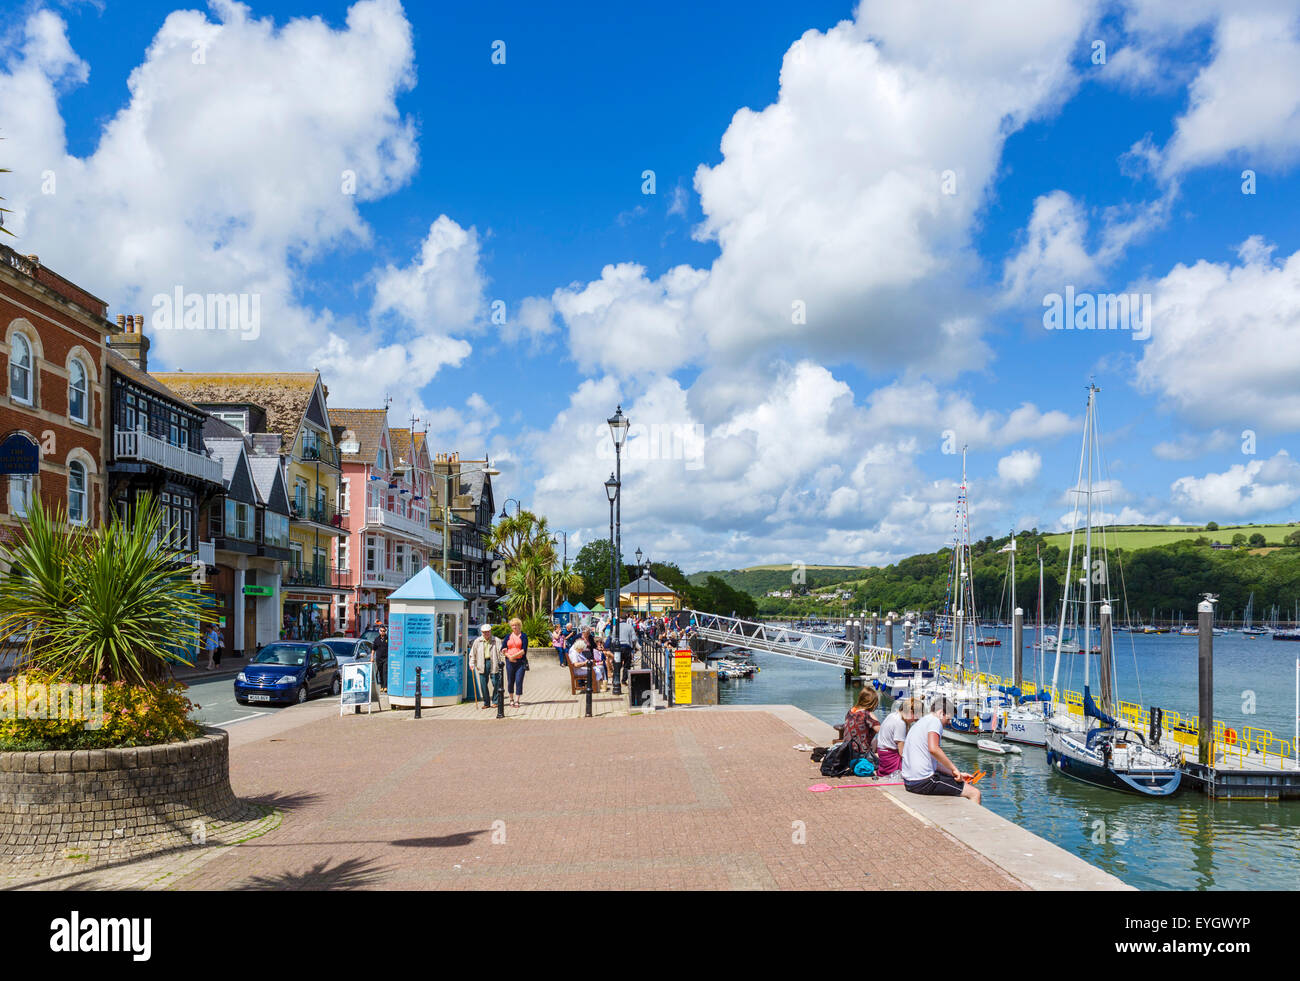 View along the South Embankment by the Dart River, Dartmouth, South Hams, Devon, England, UK - Stock Image